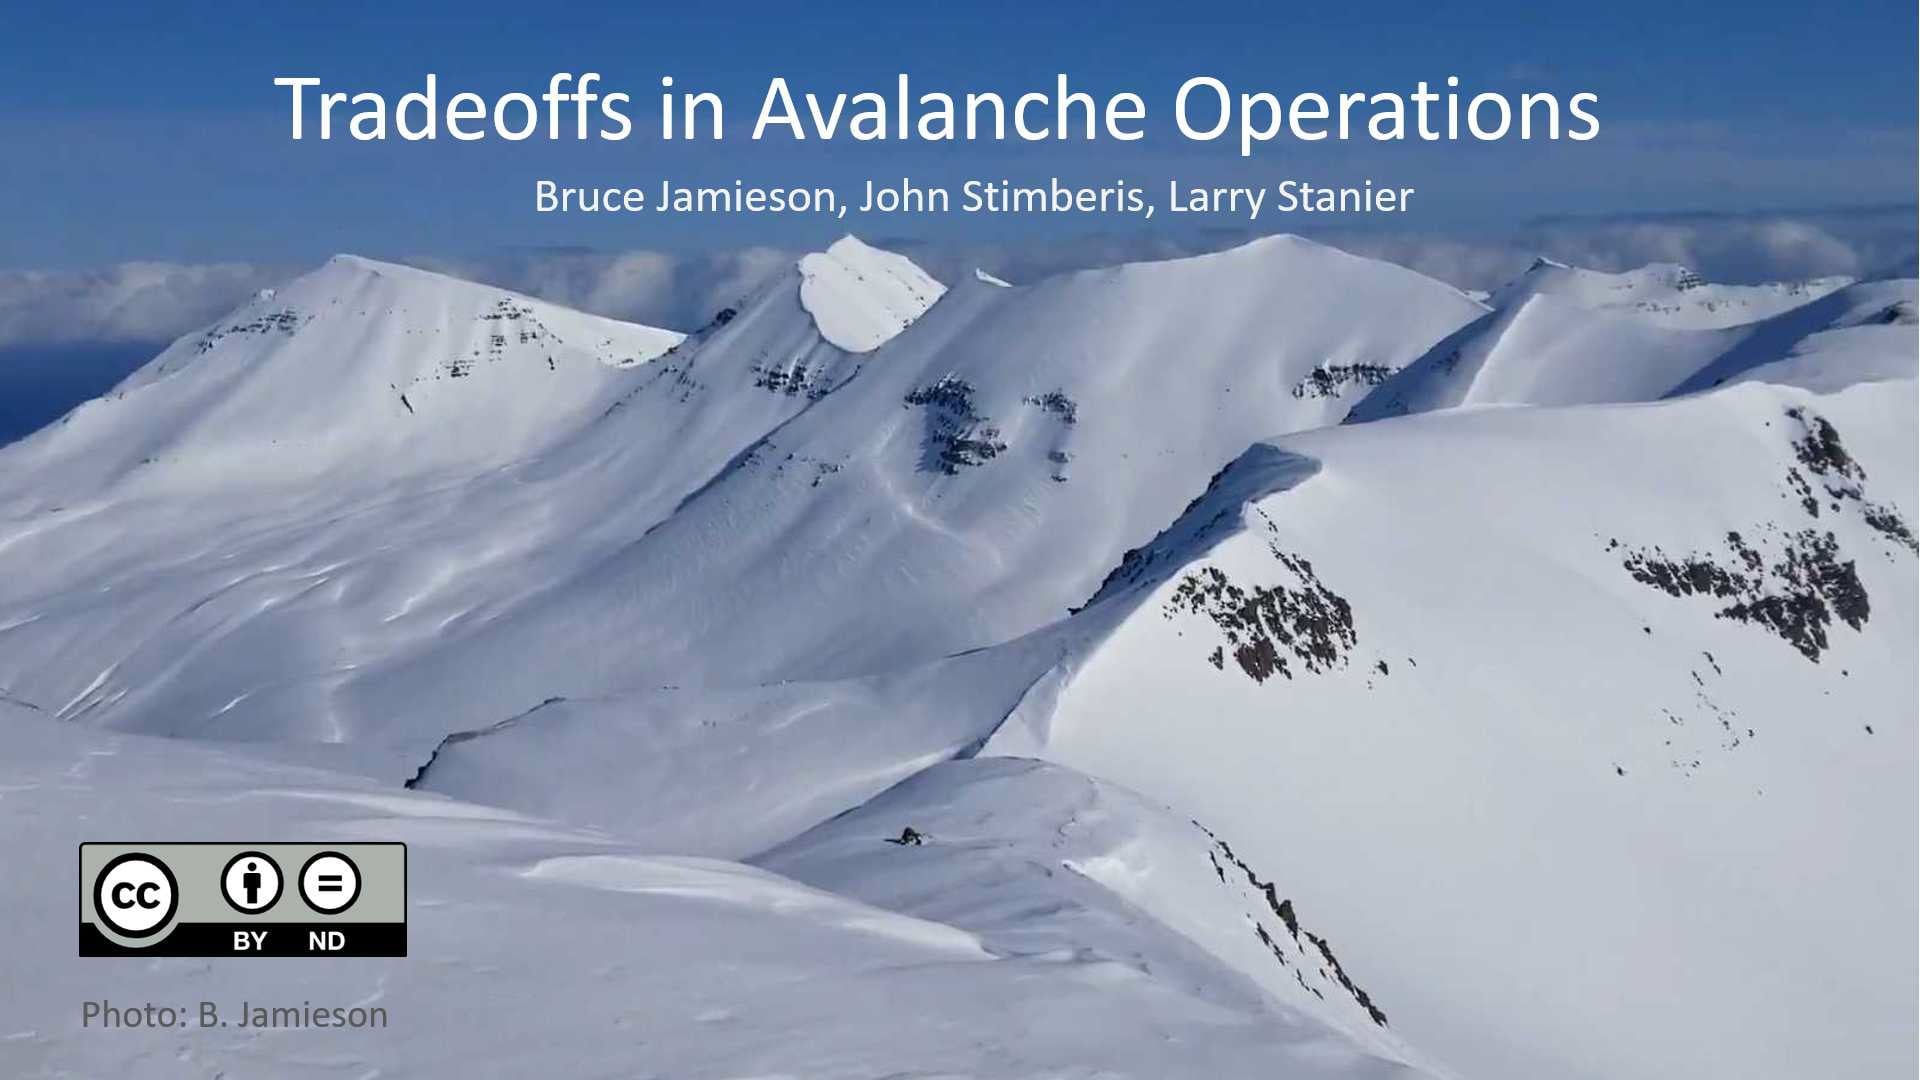 Tradeoffs in avalanche operations